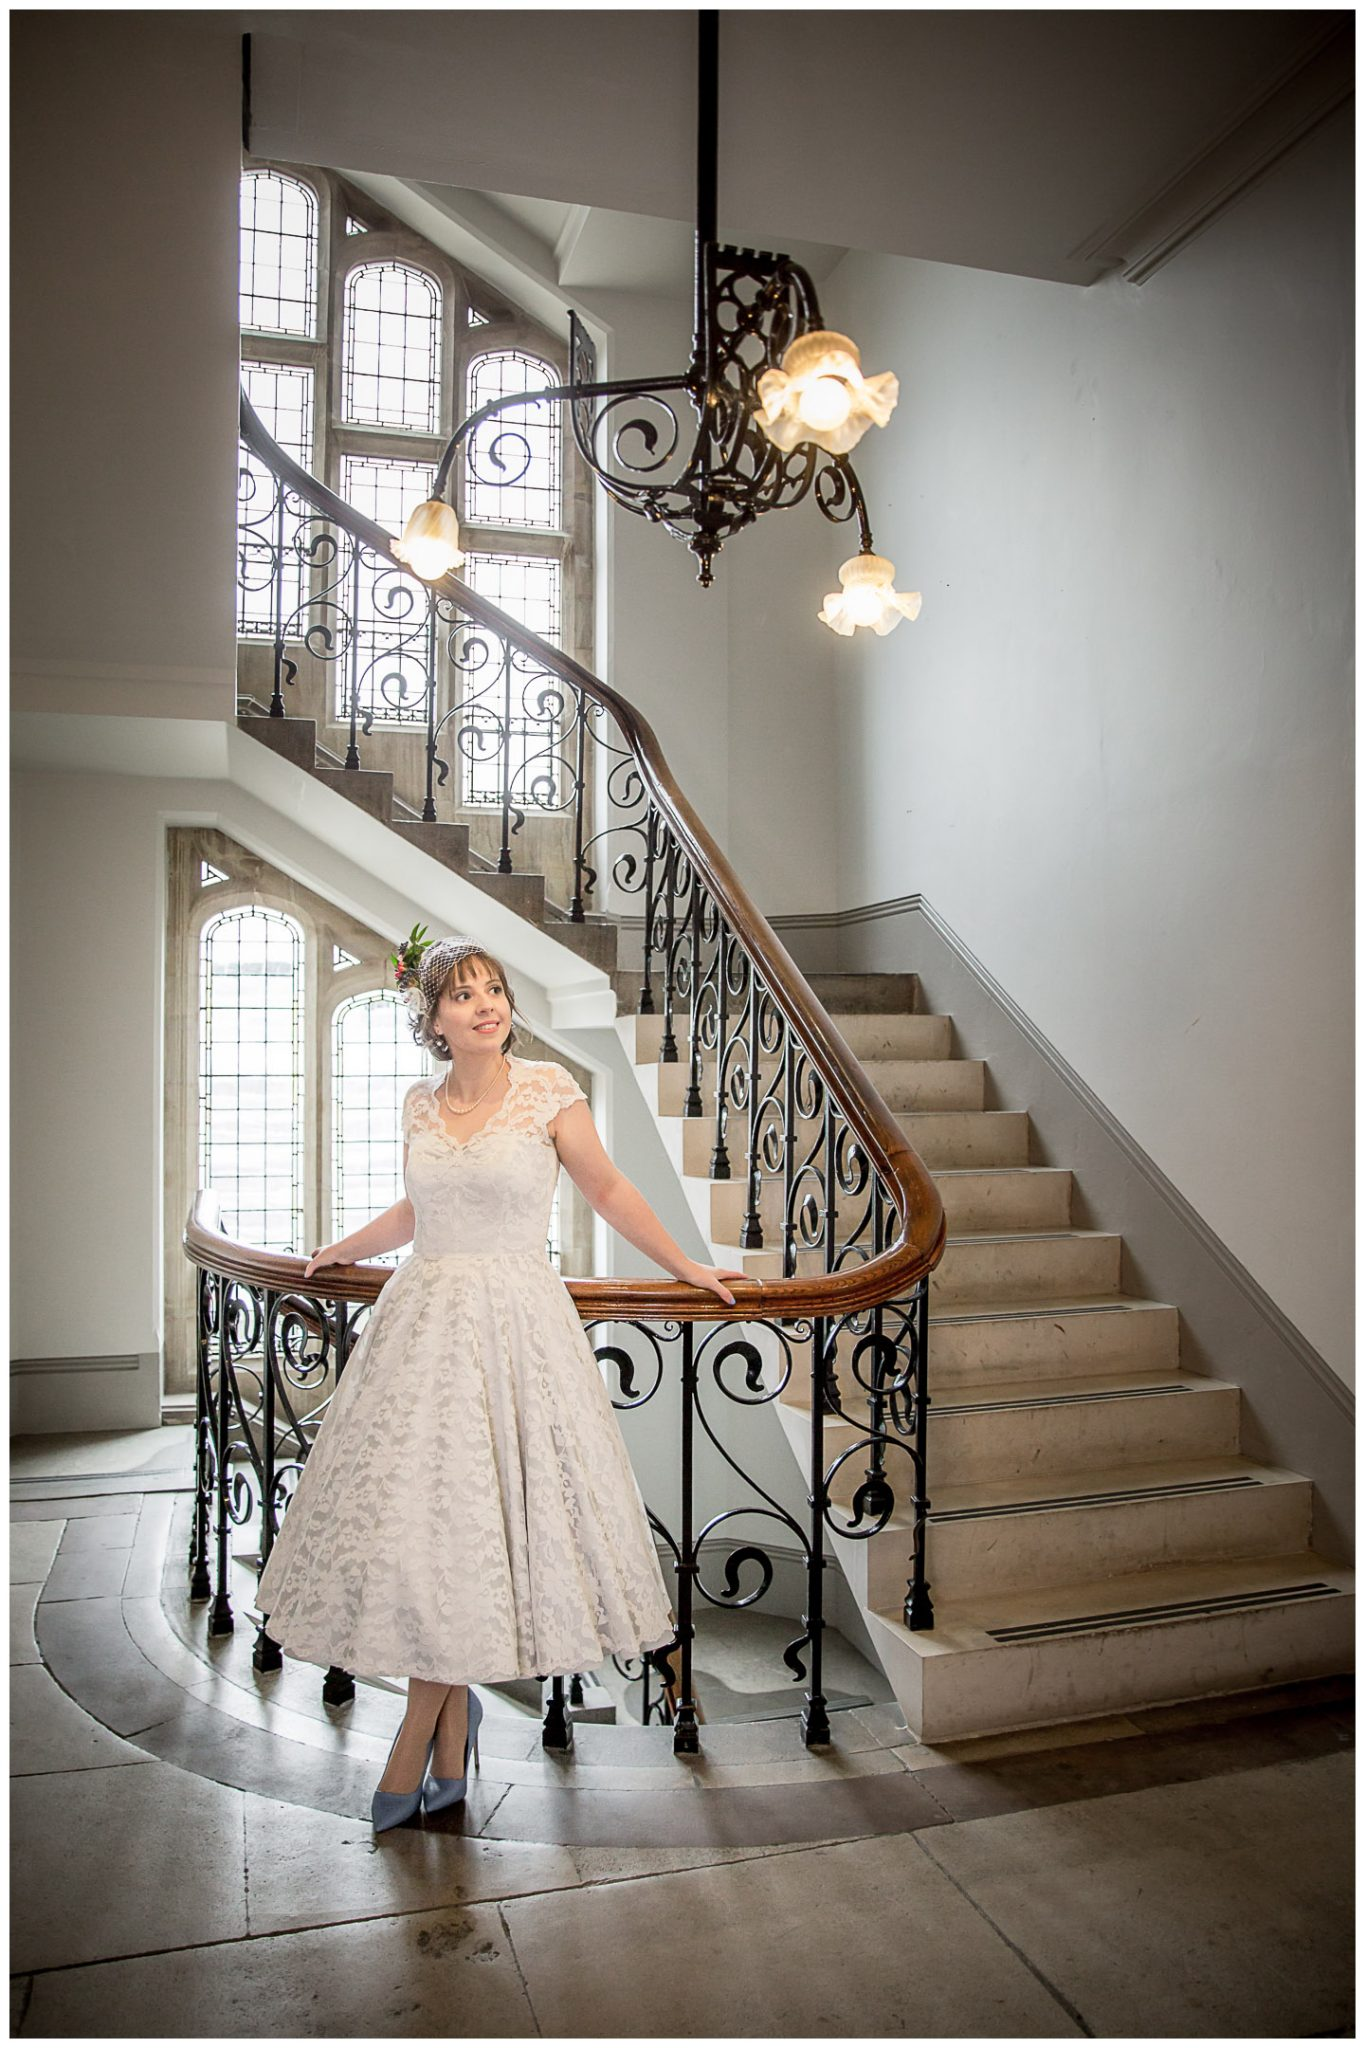 Castle Room Winchester wedding photography bride portrait by staircase